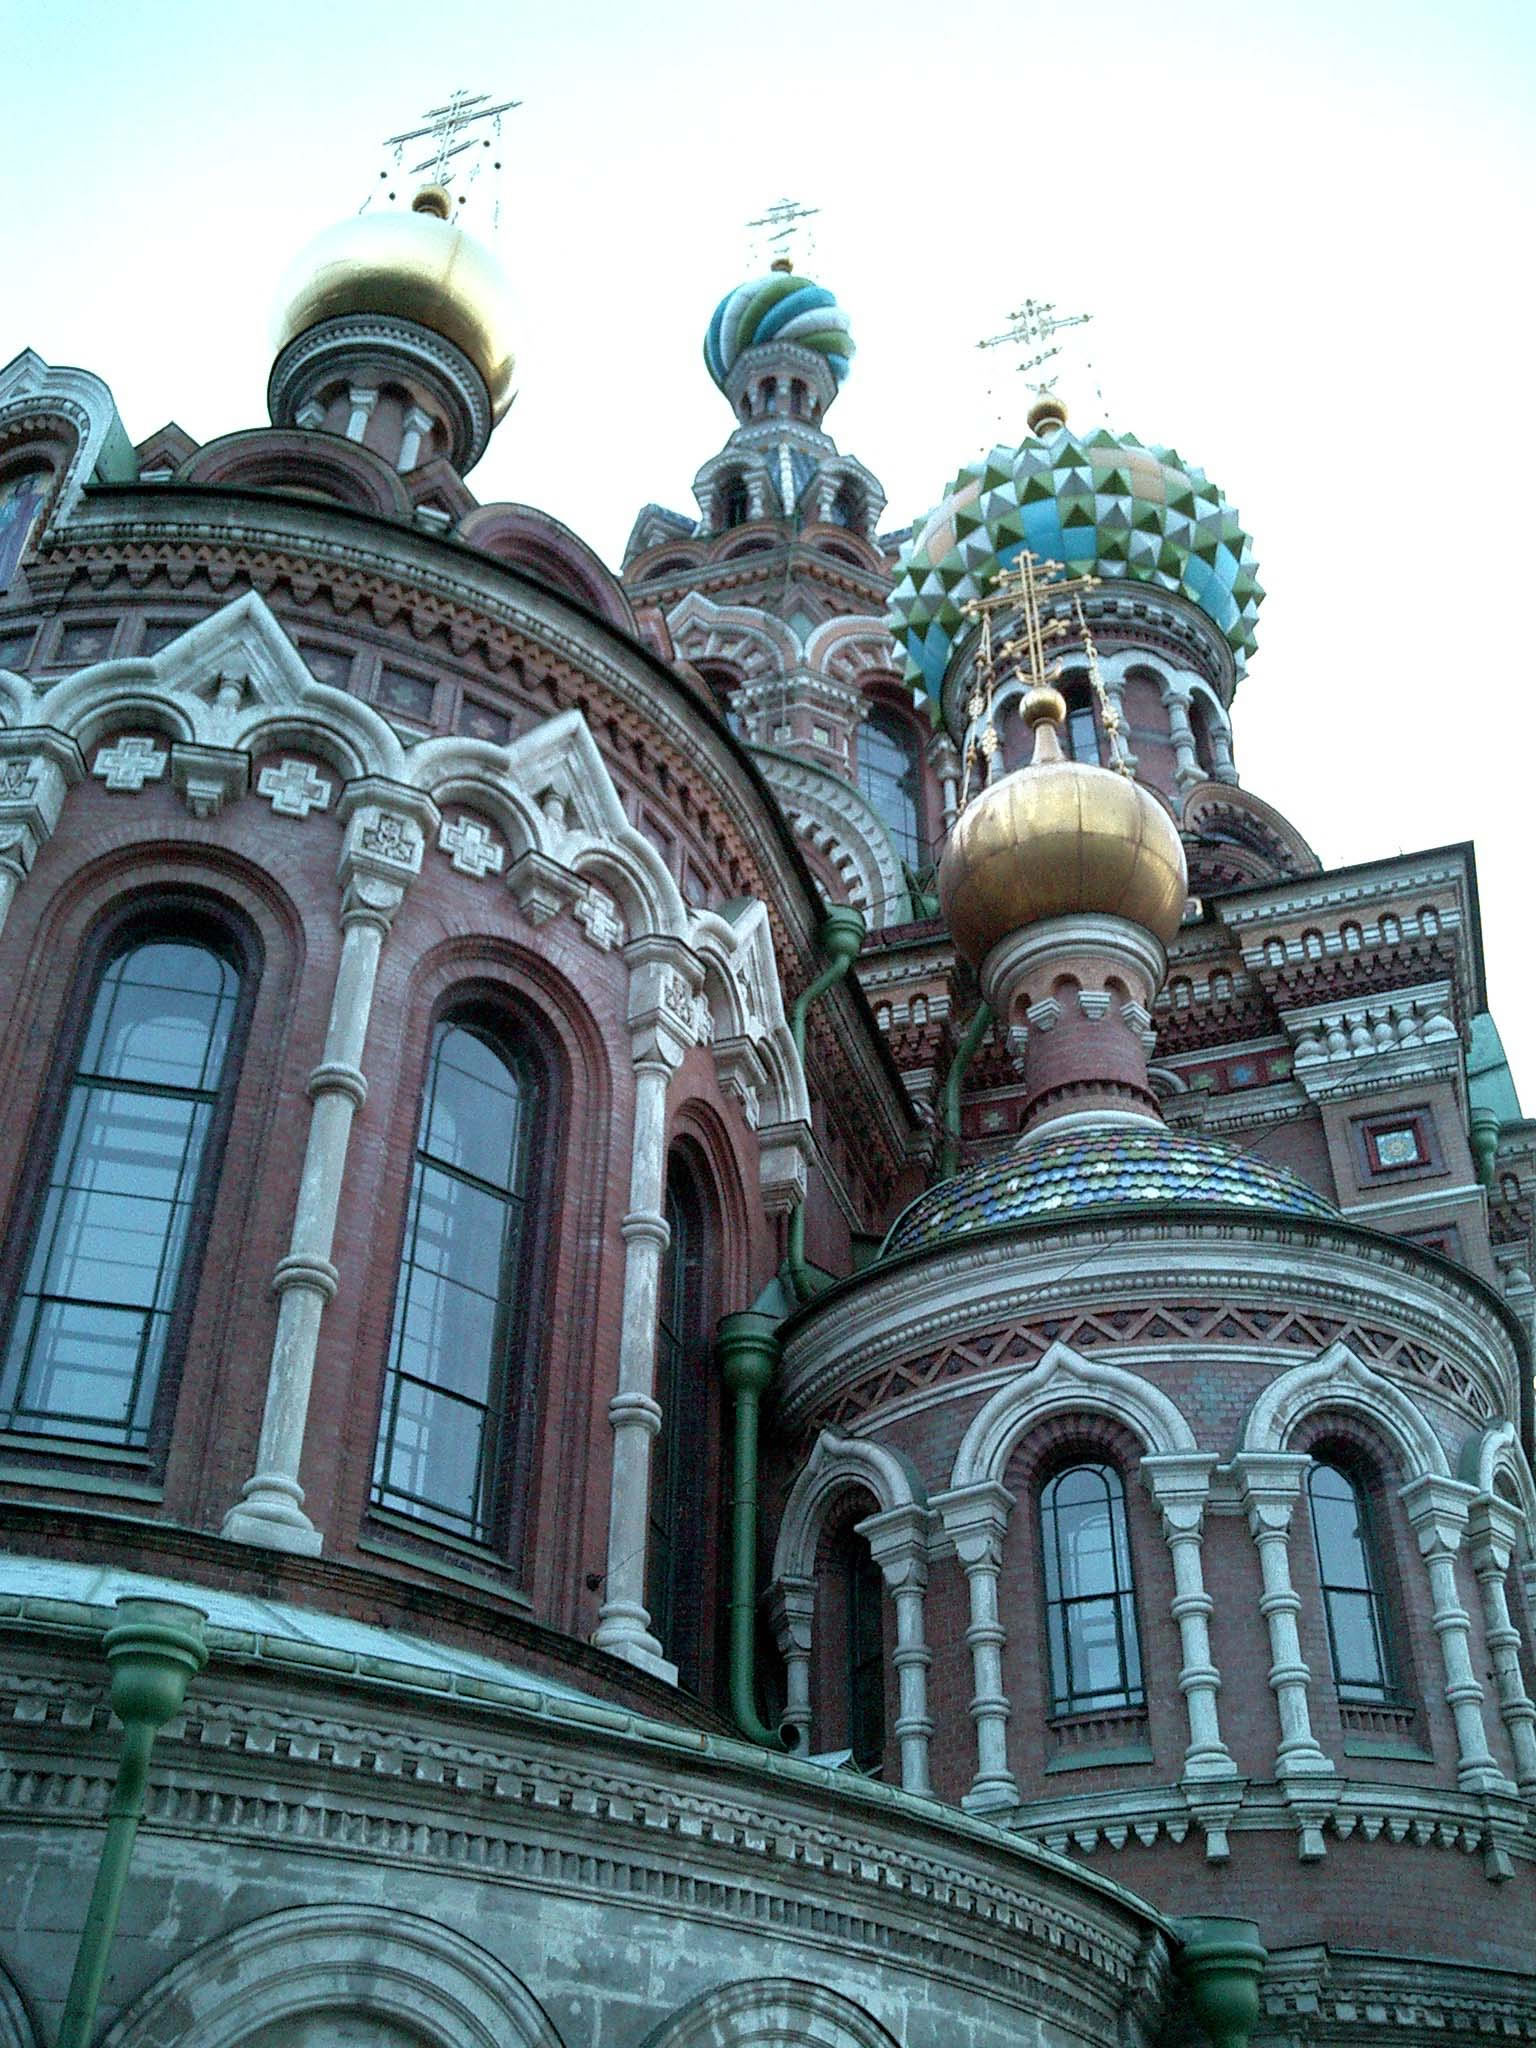 St Petersburg Architecture Church of the Savior on Blood 2005 12